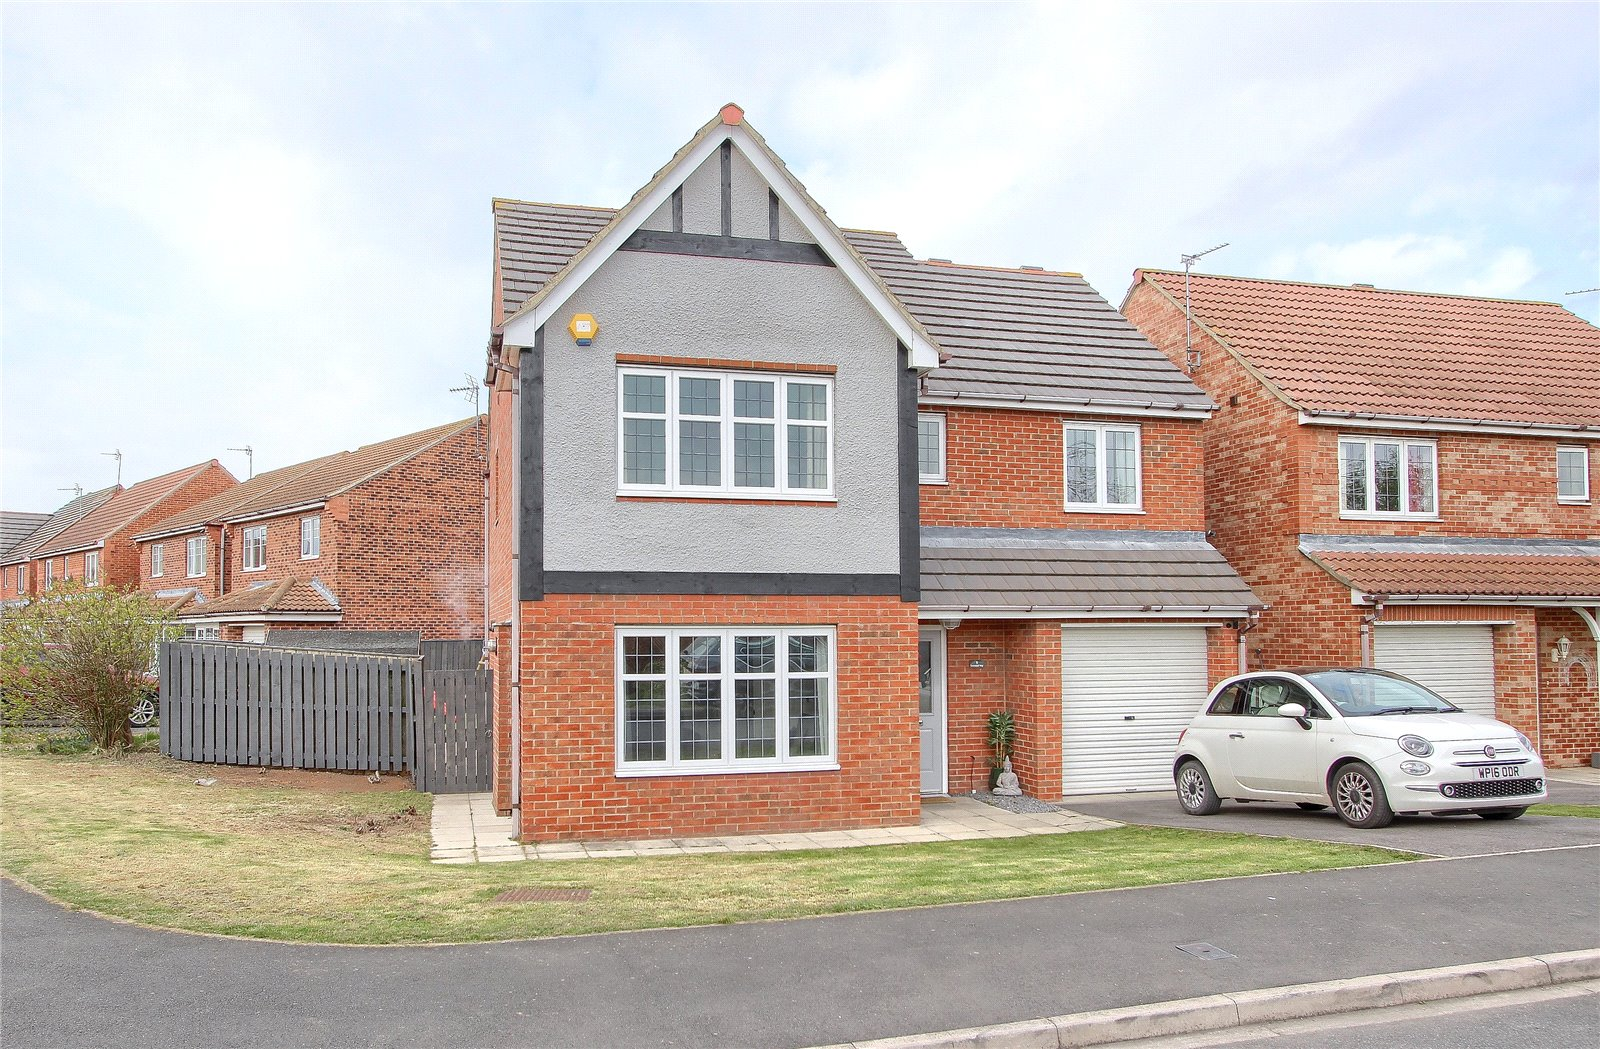 4 bed house for sale in Lowestoft Way, Redcar 1